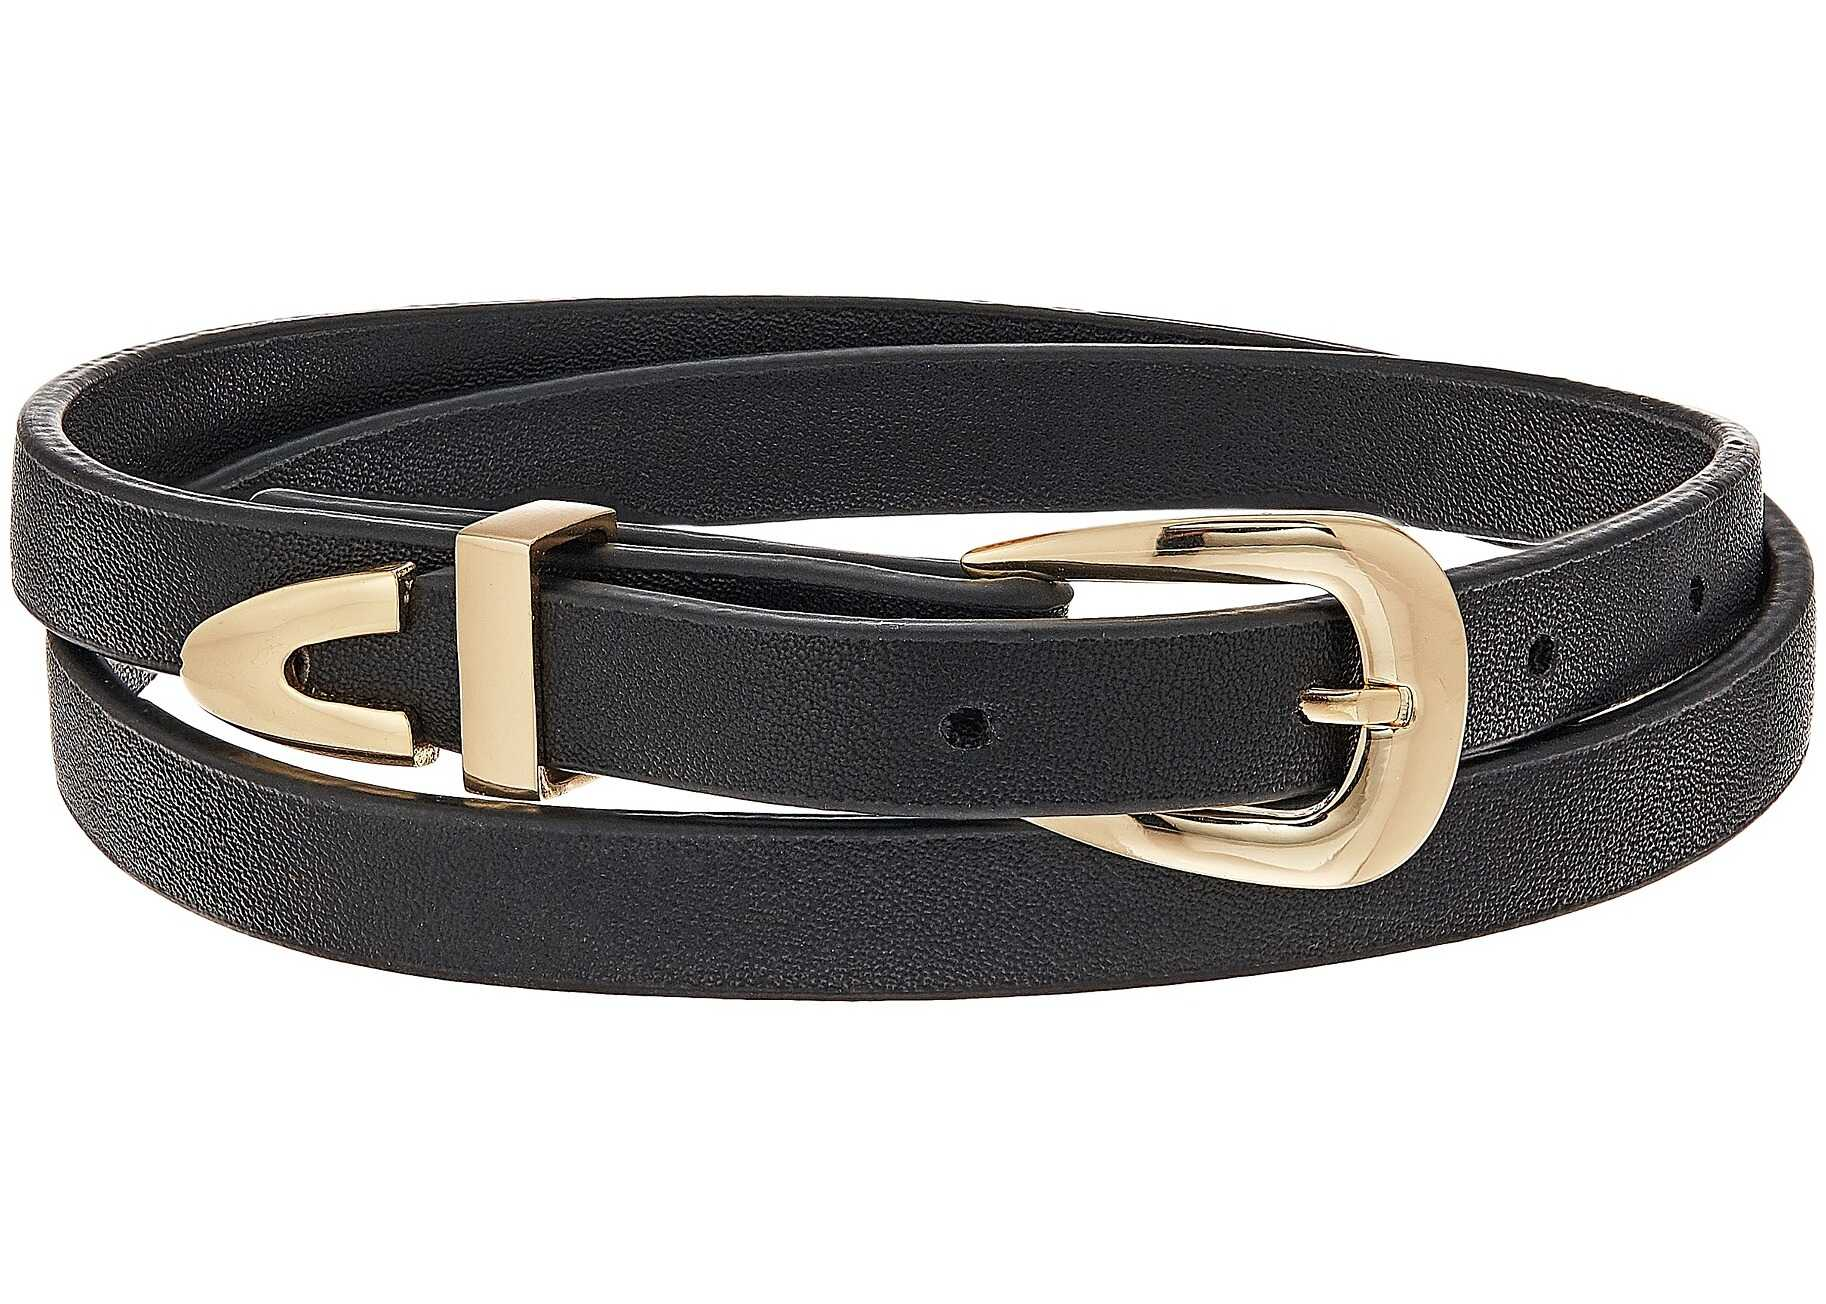 Steve Madden Leather Wrap Around Choker Necklace Gold